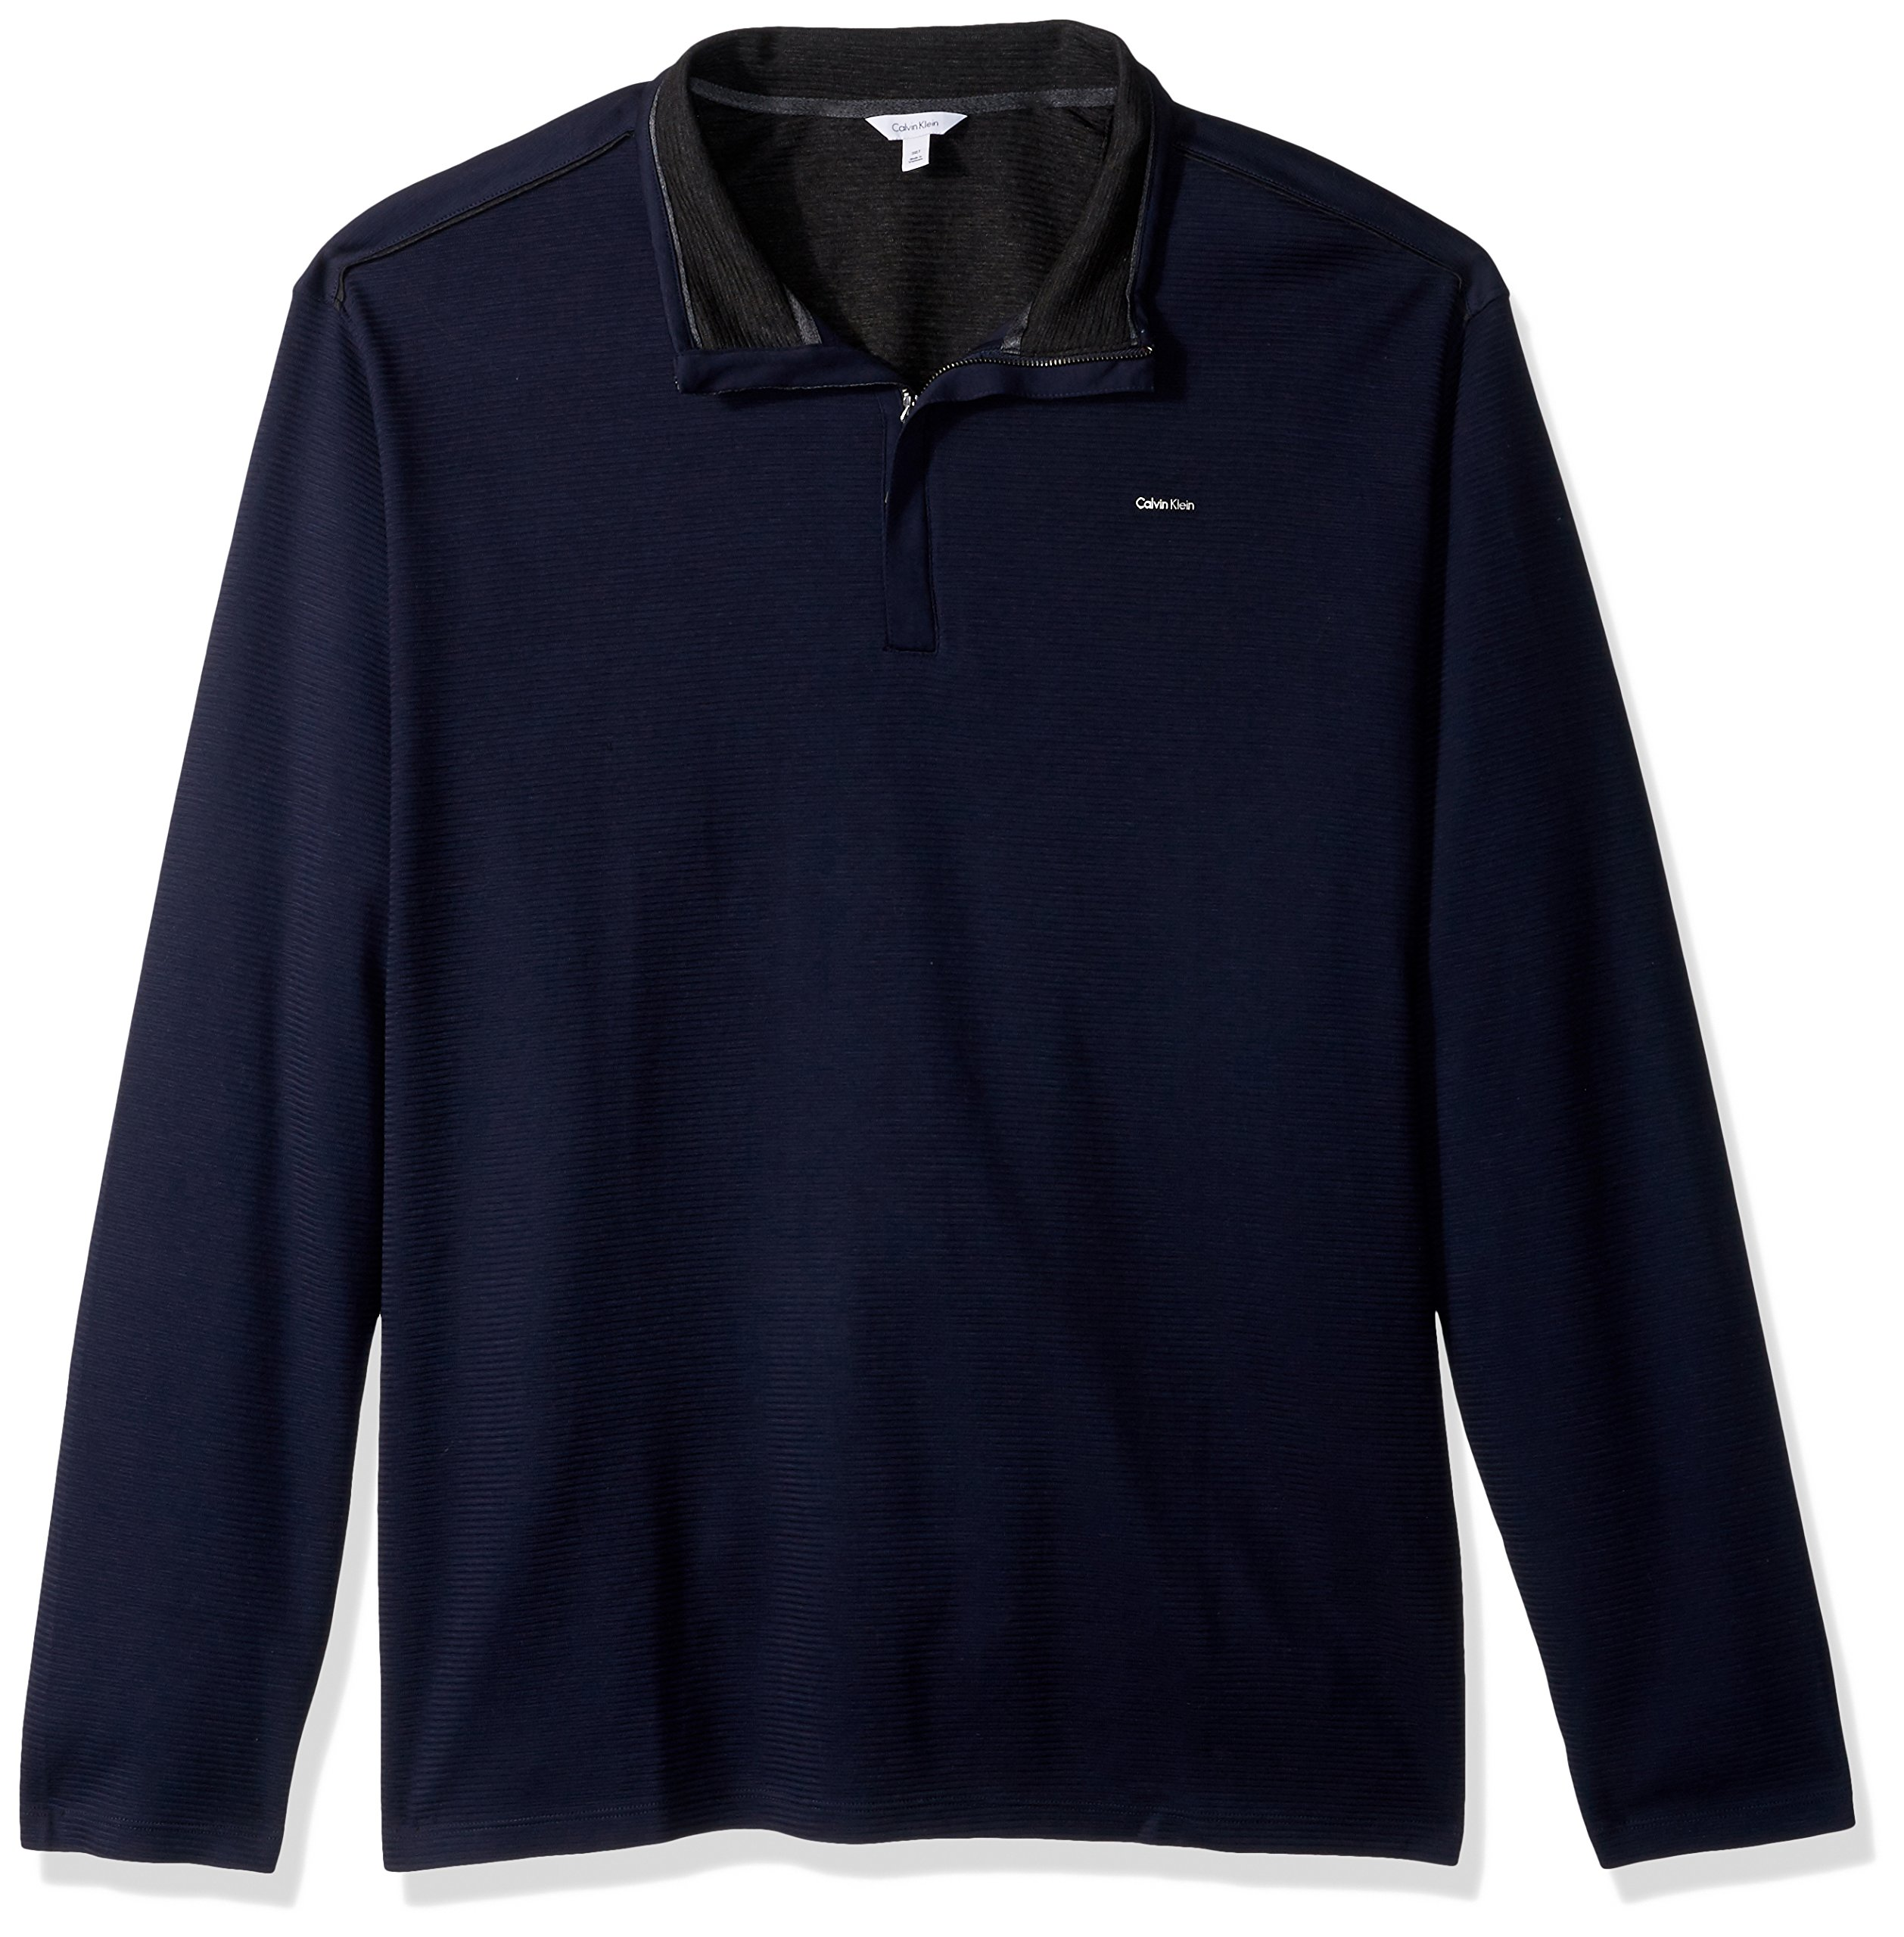 Calvin Klein Men's Big and Tall Long Sleeve 1/4 Zip Solid Jacquard Knit Shirt, Cadet Navy, 4X-Large T